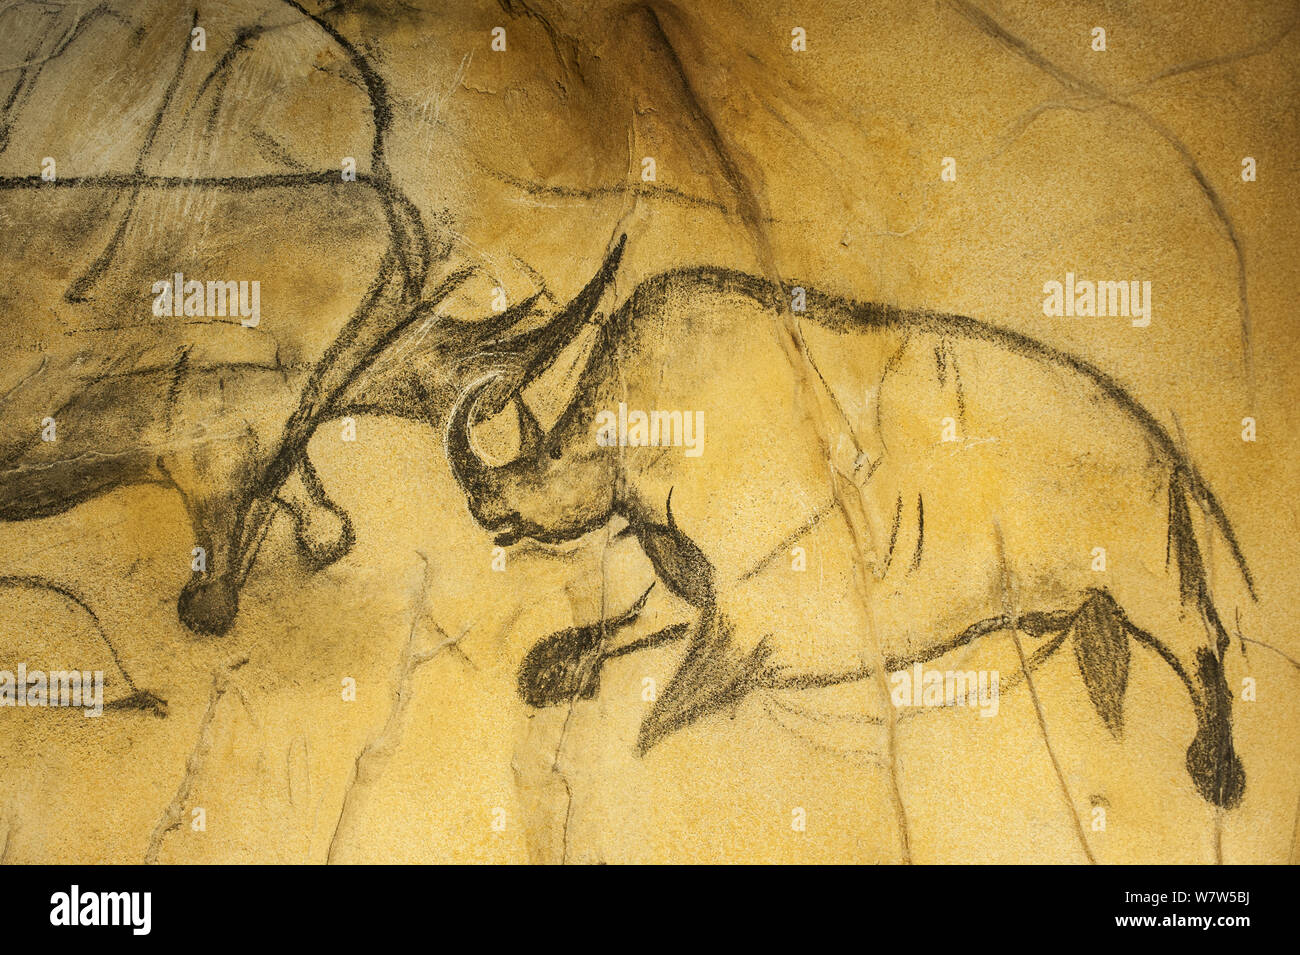 Chauvet Cave High Resolution Stock Photography And Images Alamy